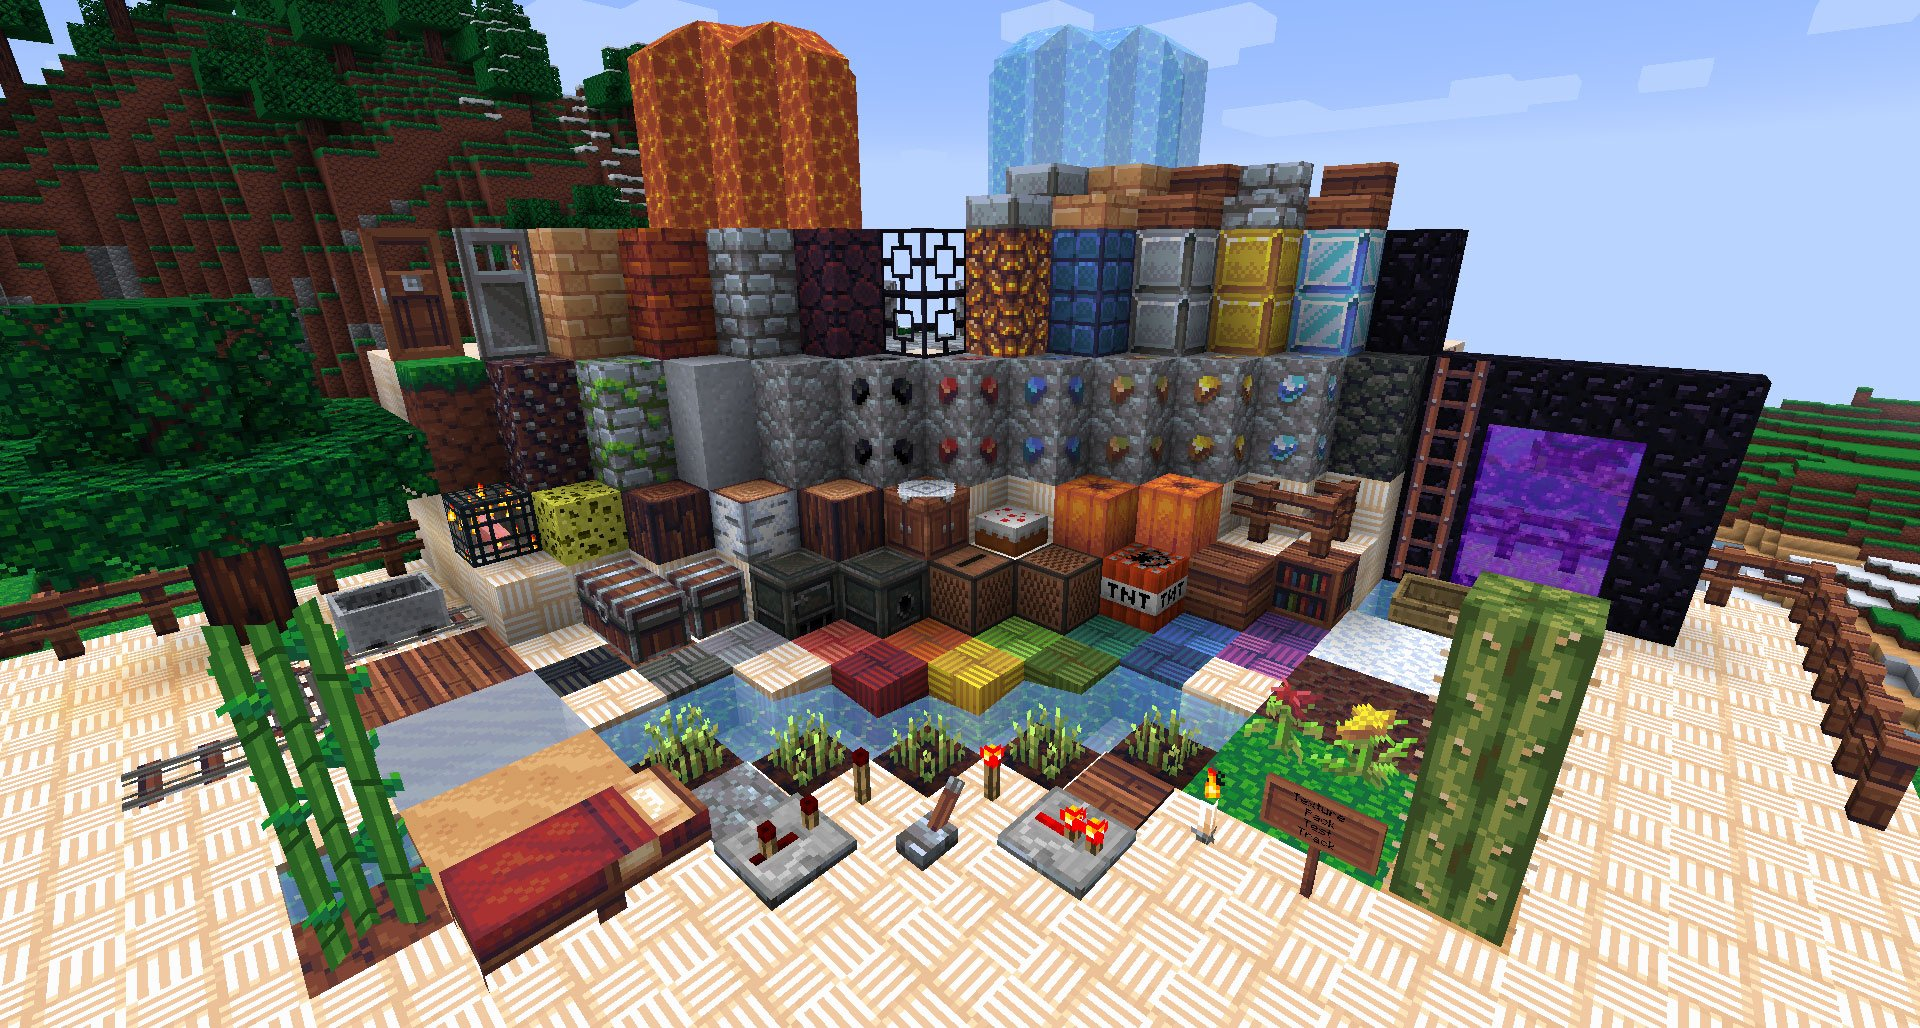 how to find minecraft texture pack